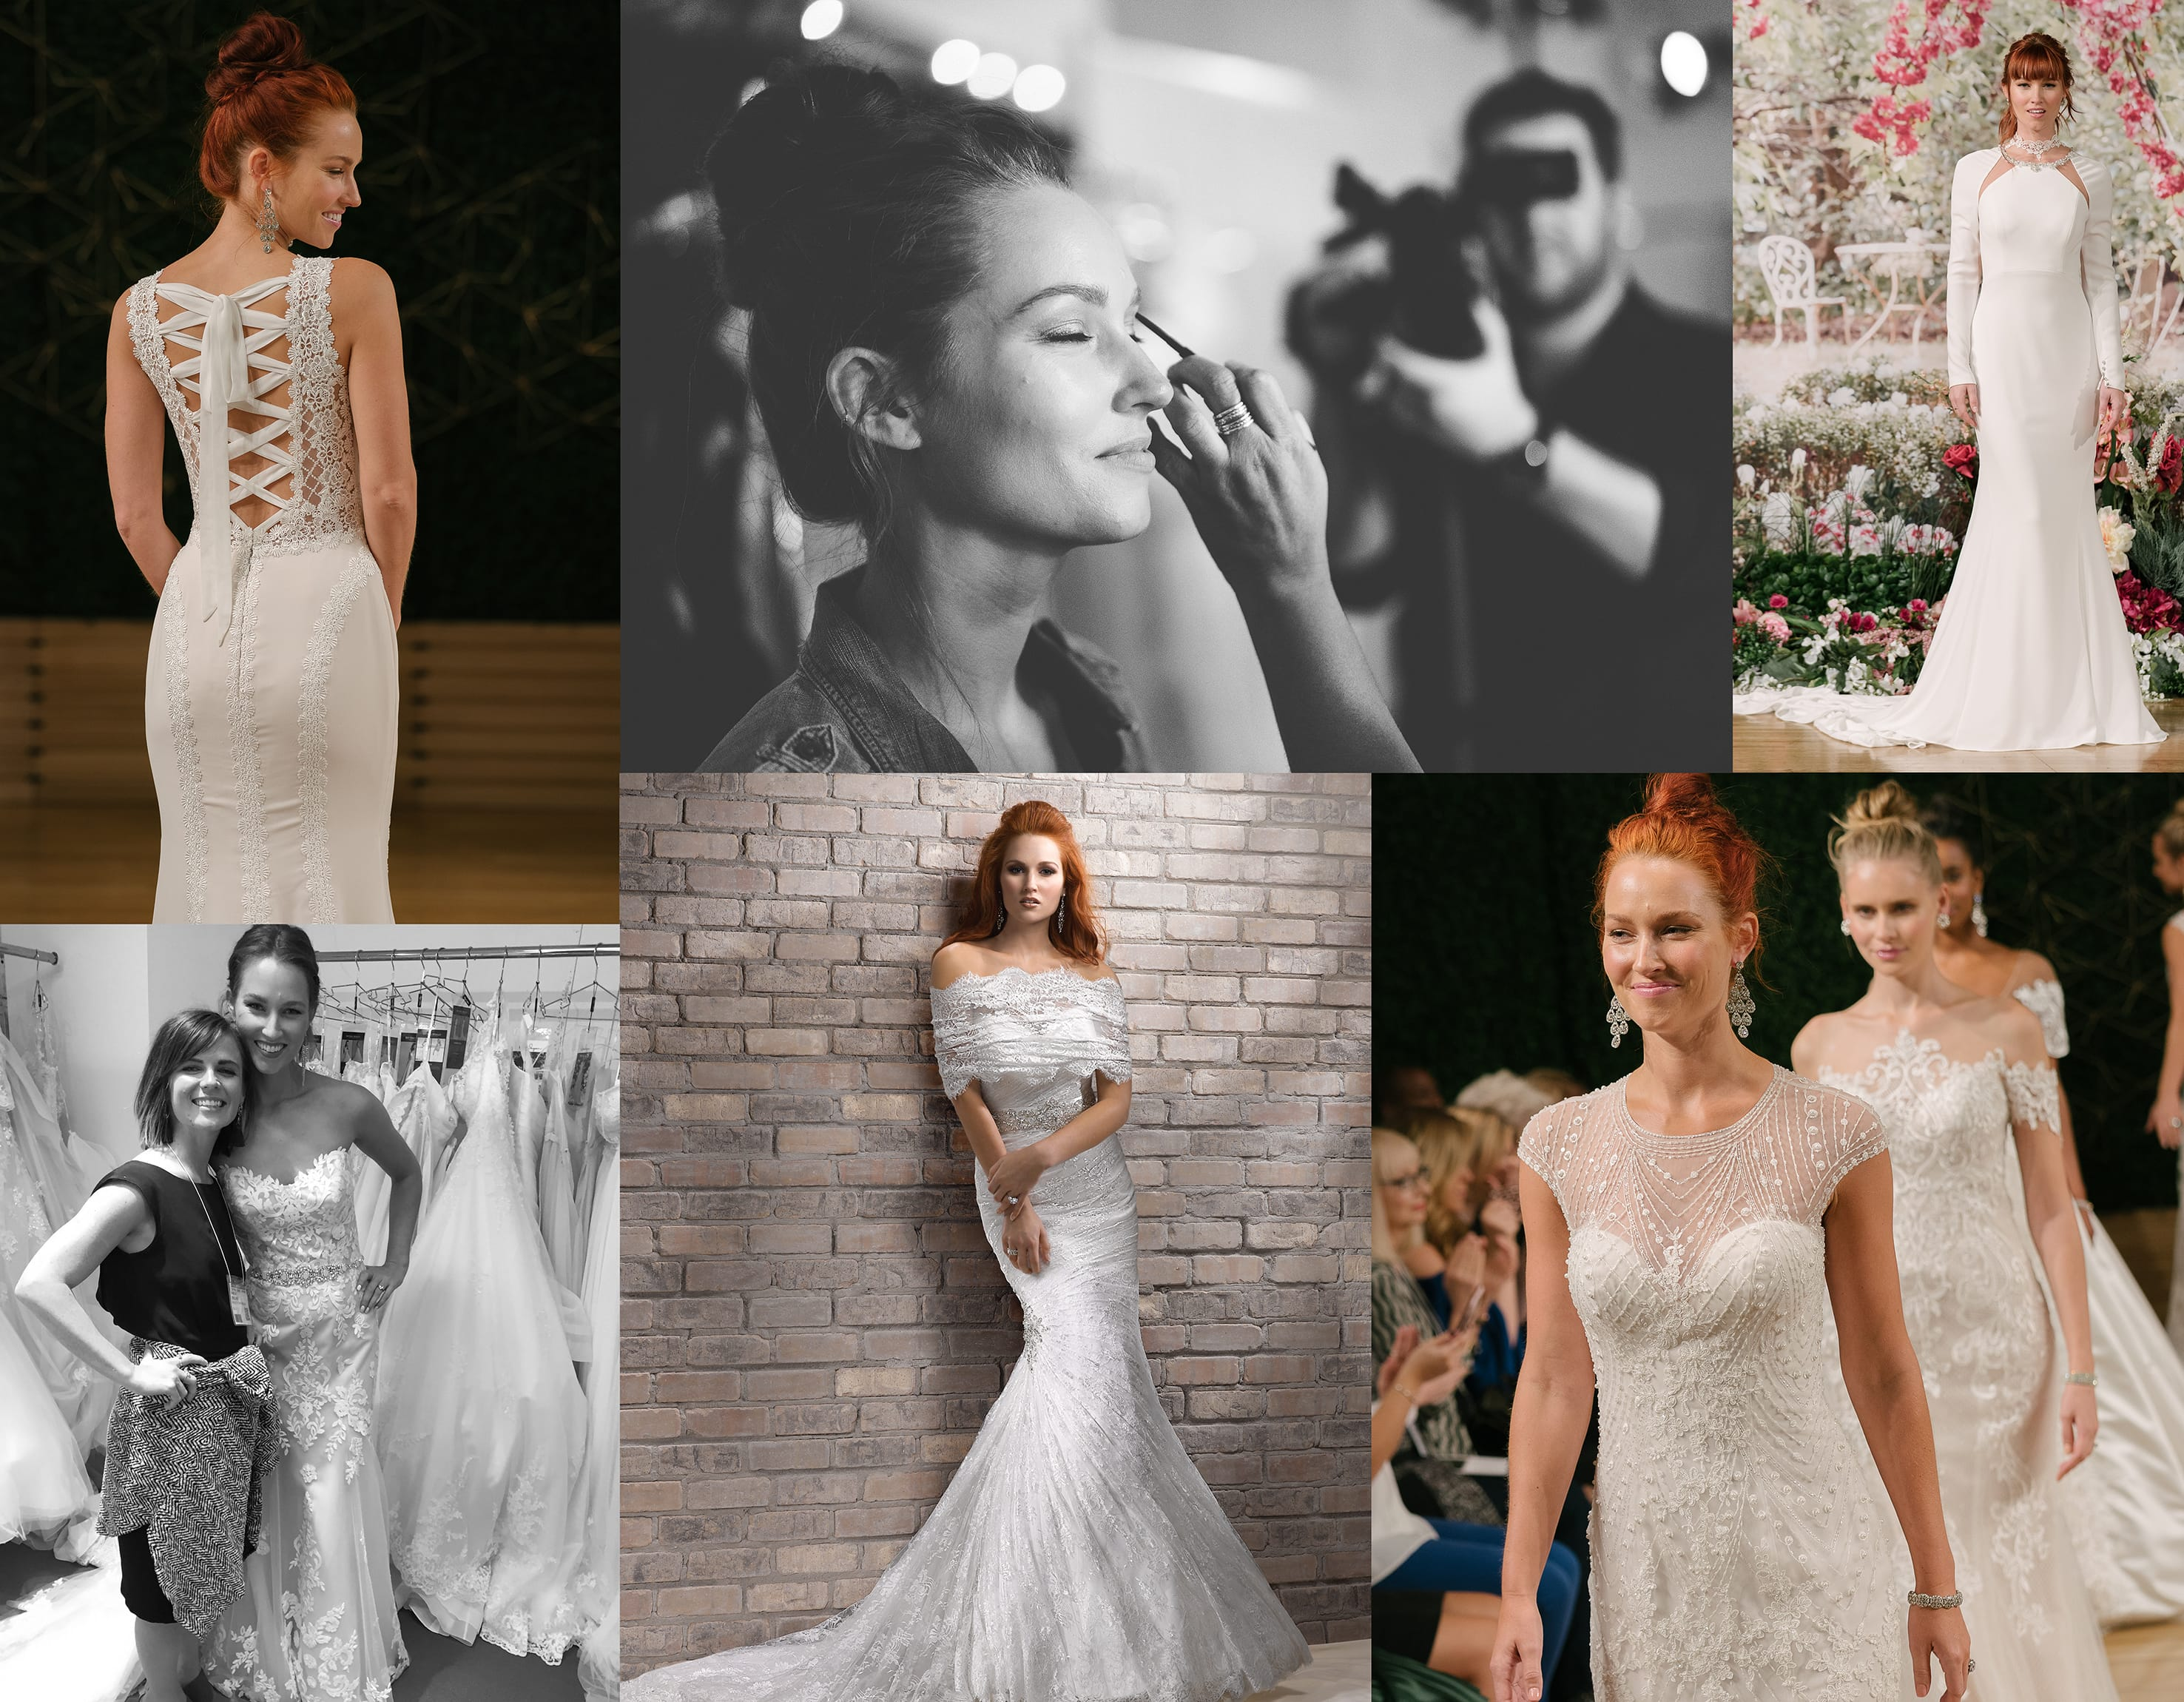 Maggie Sottero Model Devon and Her Great Gatbsy-Inspired Wedding - Maxwell by Sottero & Midgley